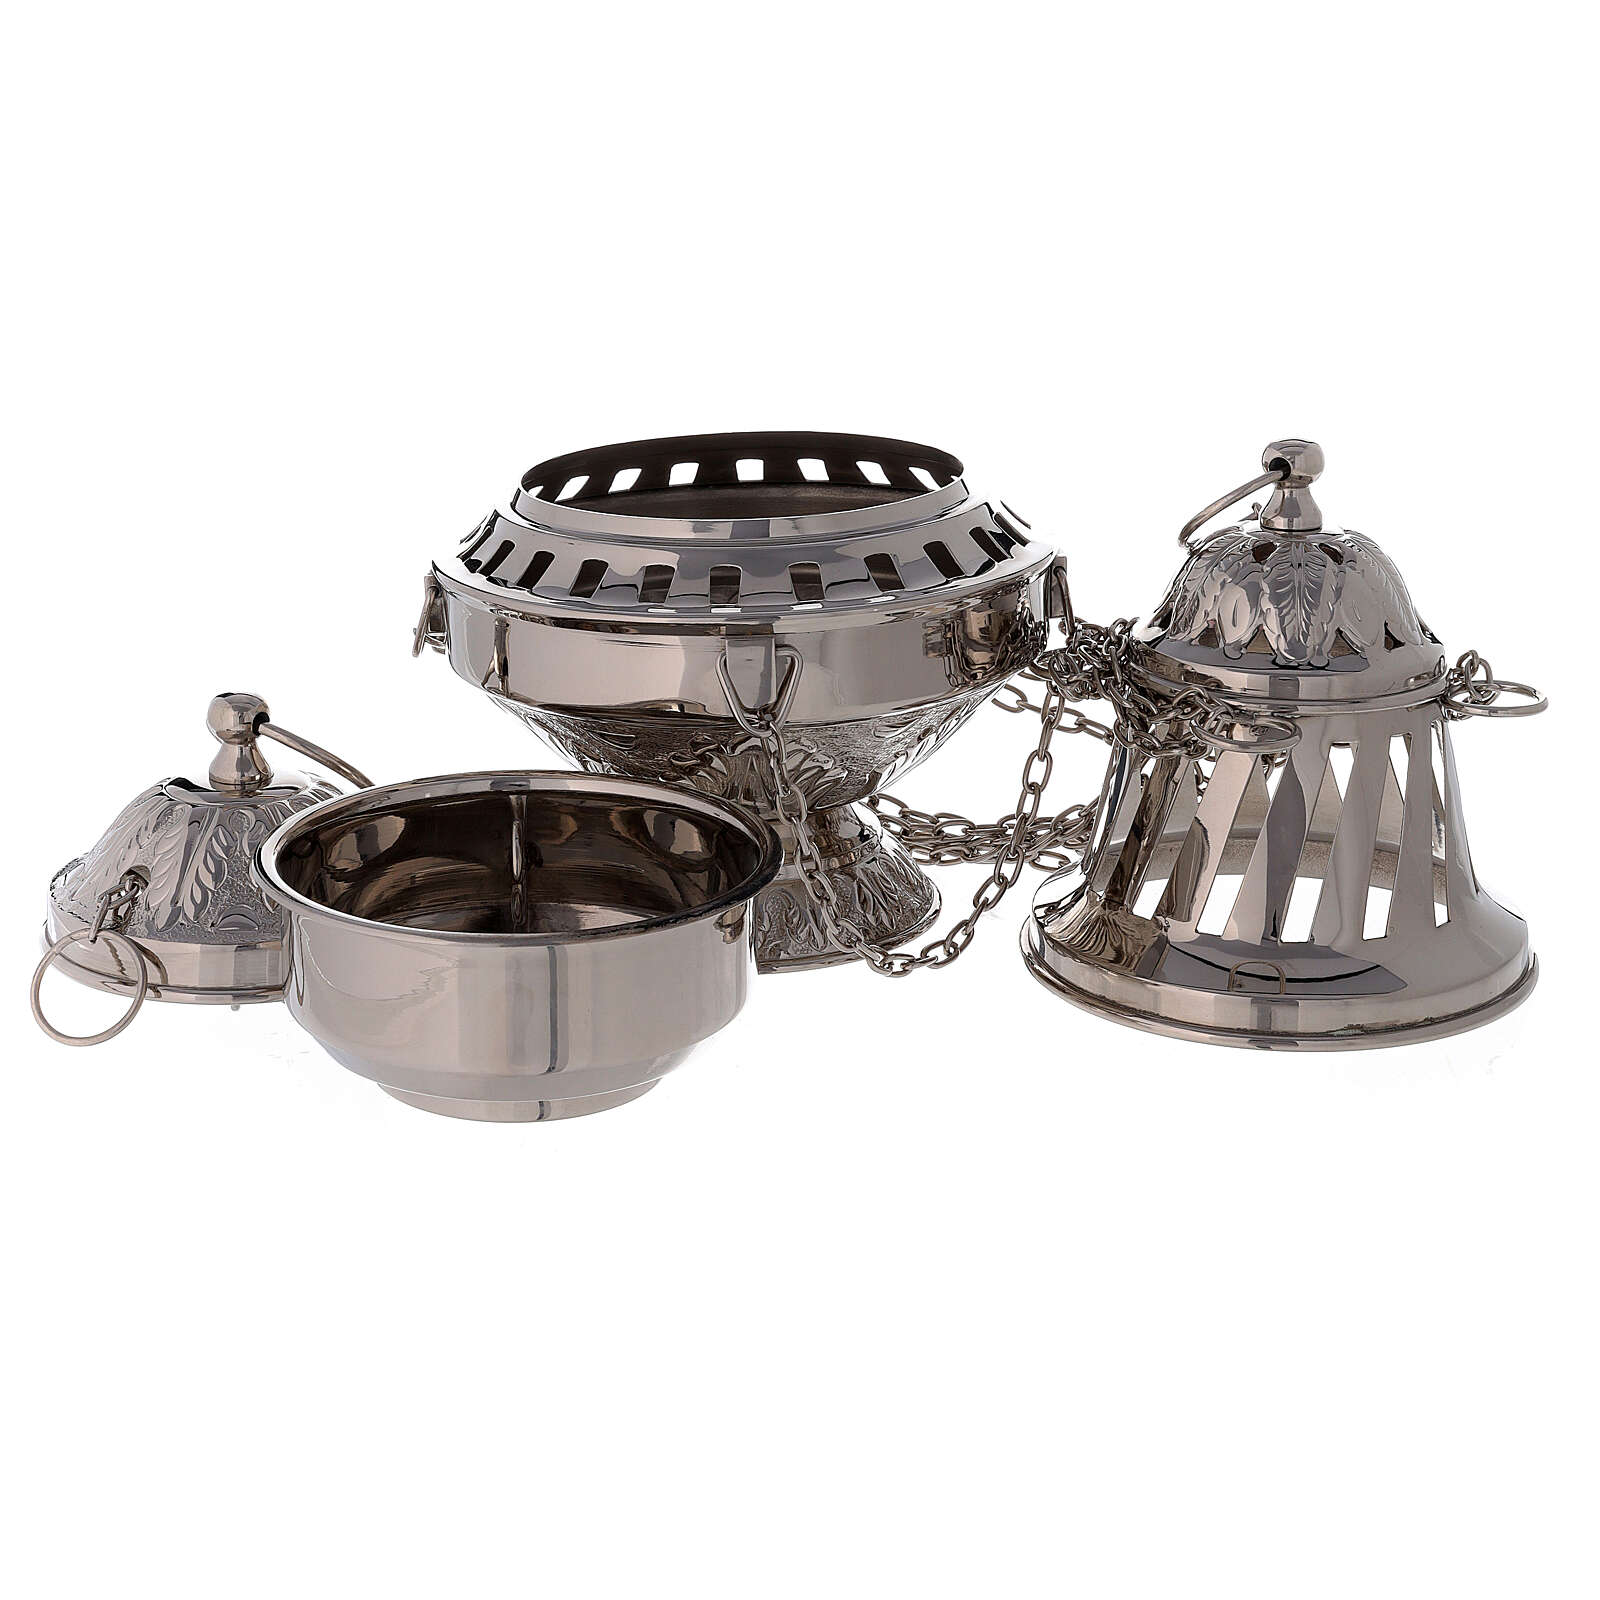 Thurible with leaves decorations nickel-plated brass 10 1/2 in 3